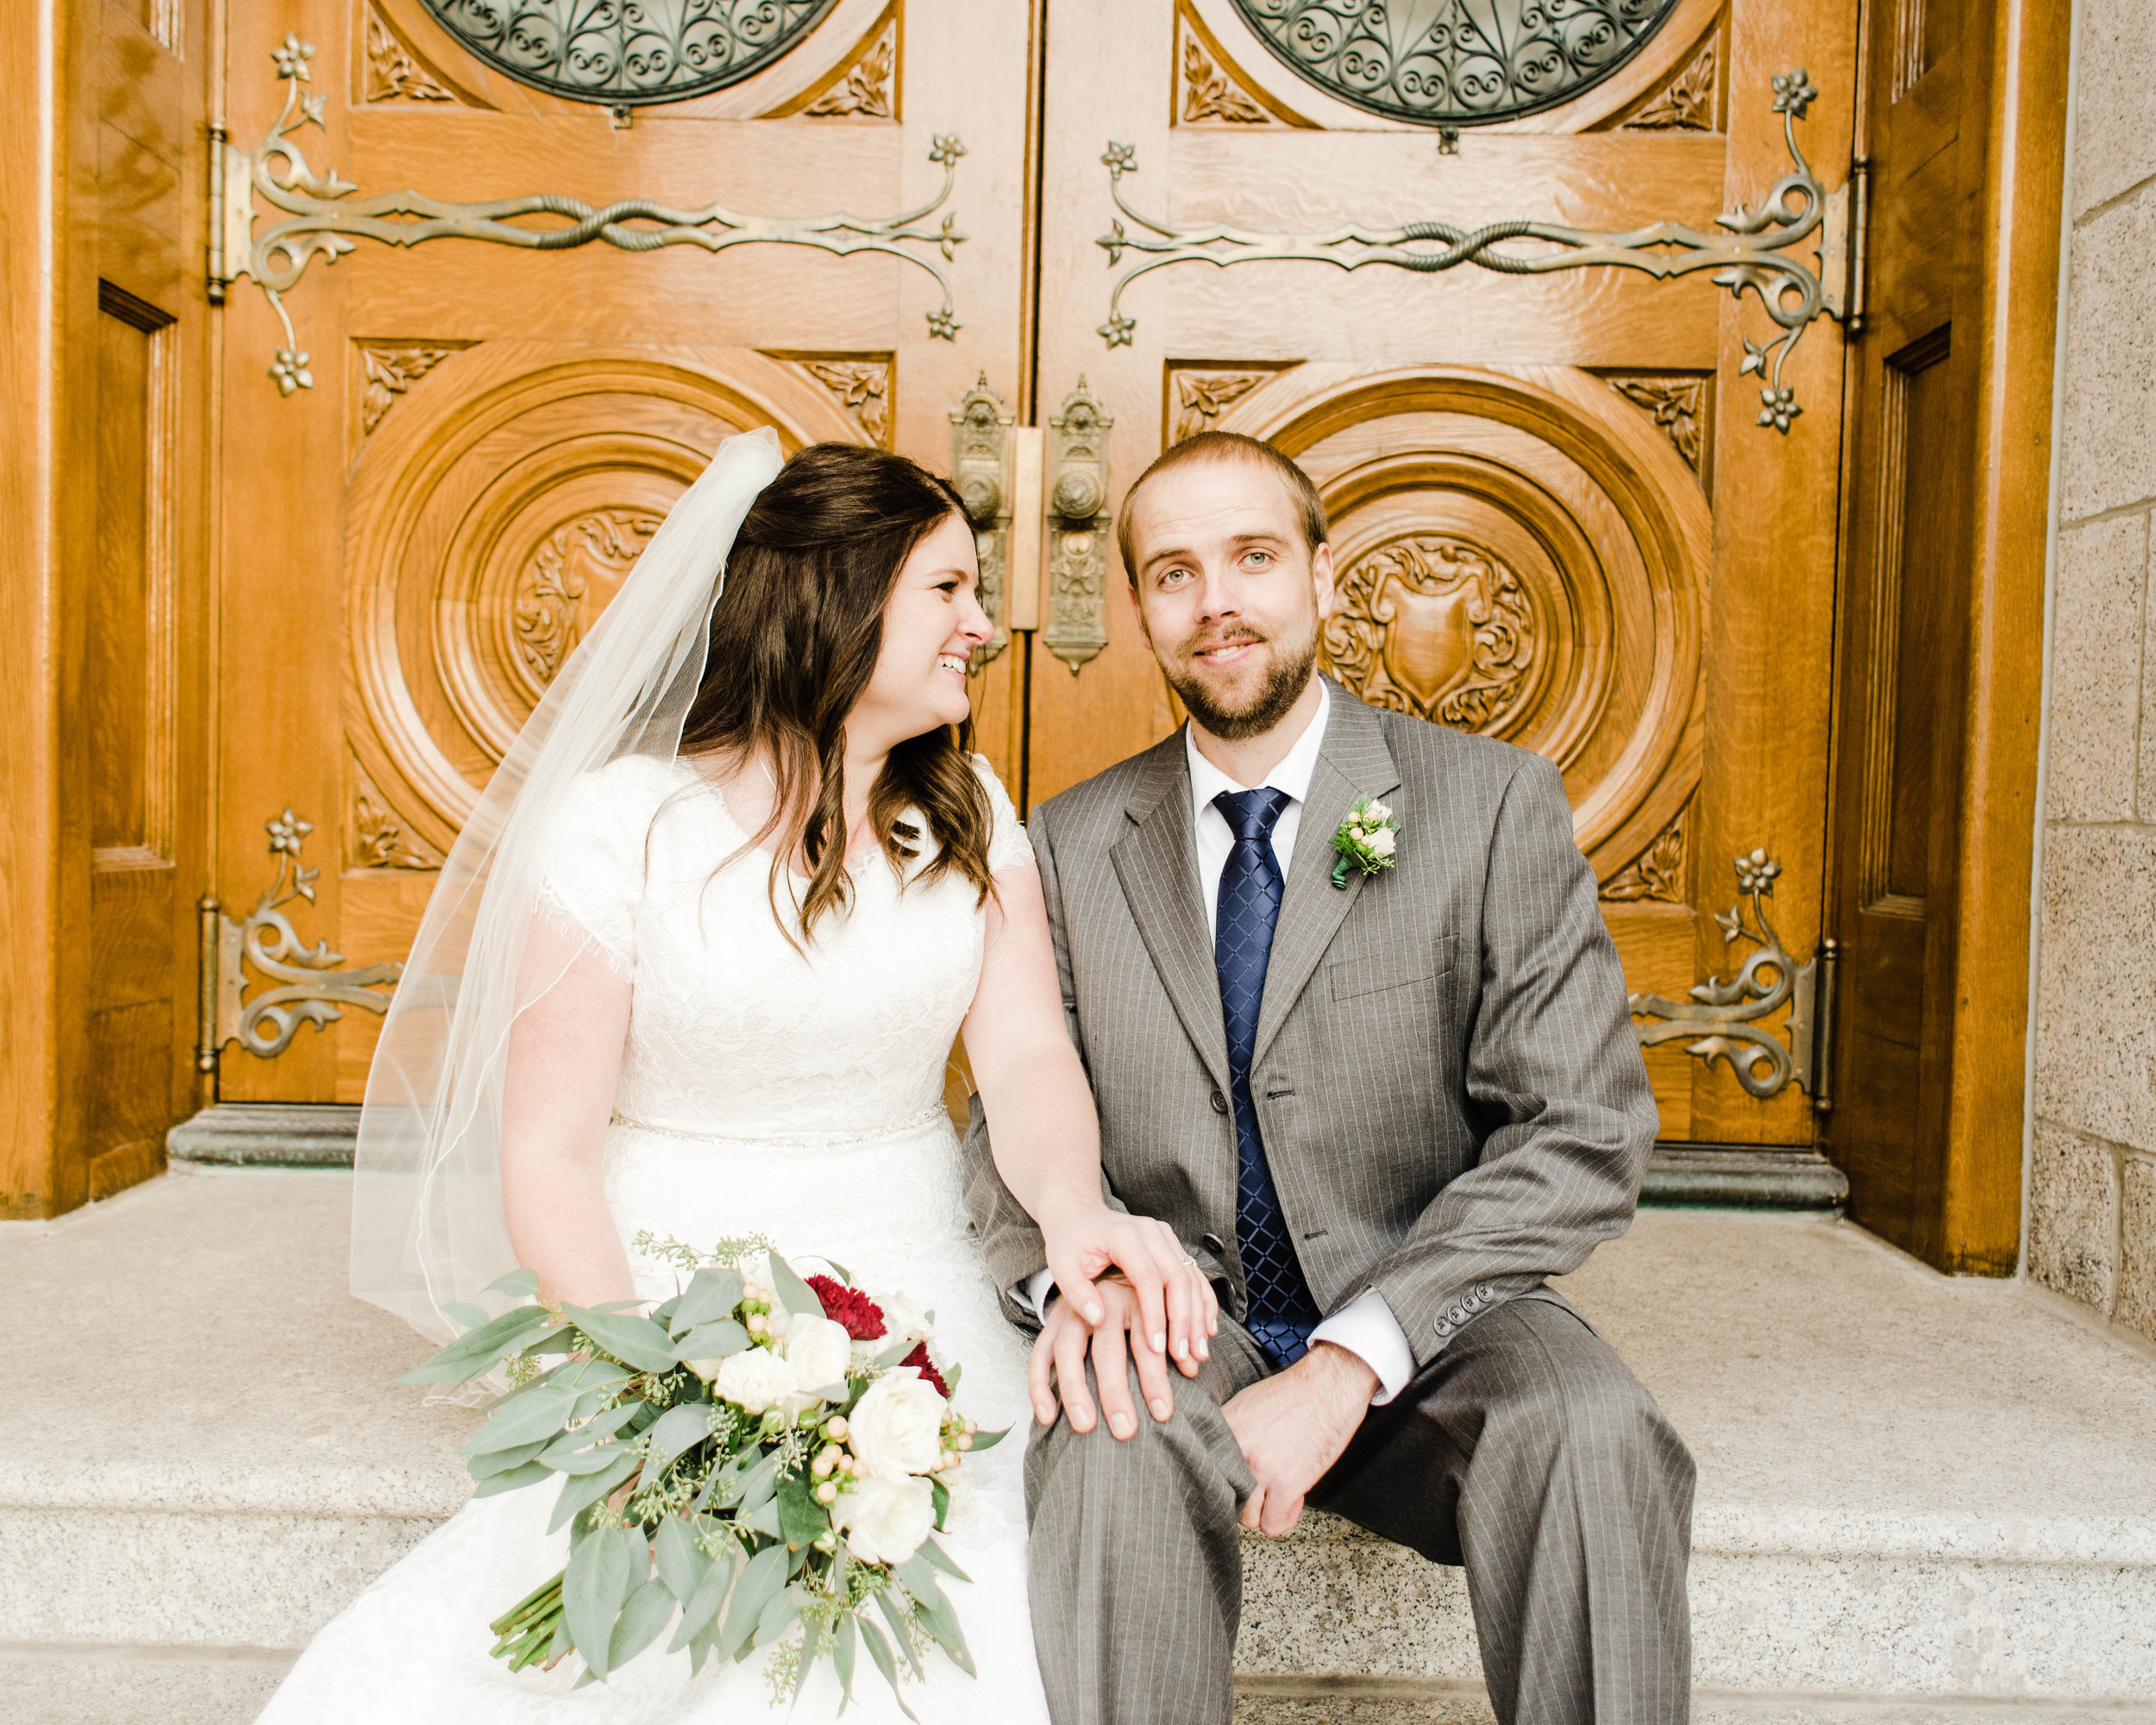 LINDSAY+BRAD-BRIDALS-Sadie_Banks_Photography-111.jpg